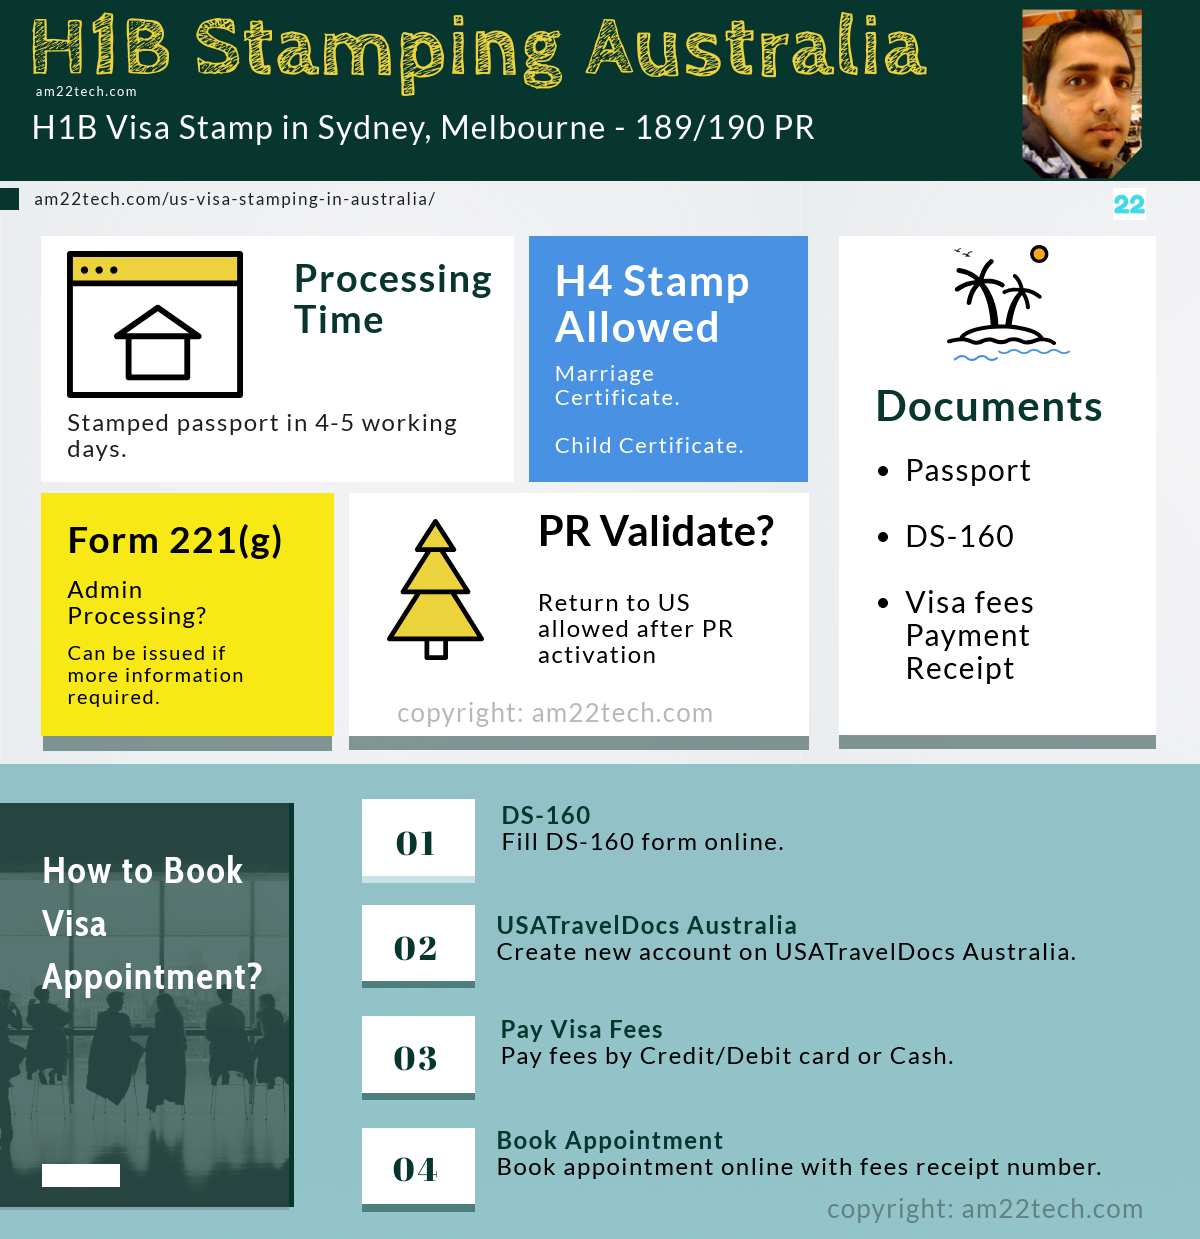 H1B Stamping in Australia -Sydney, Melbourne with PR - AM22 Tech